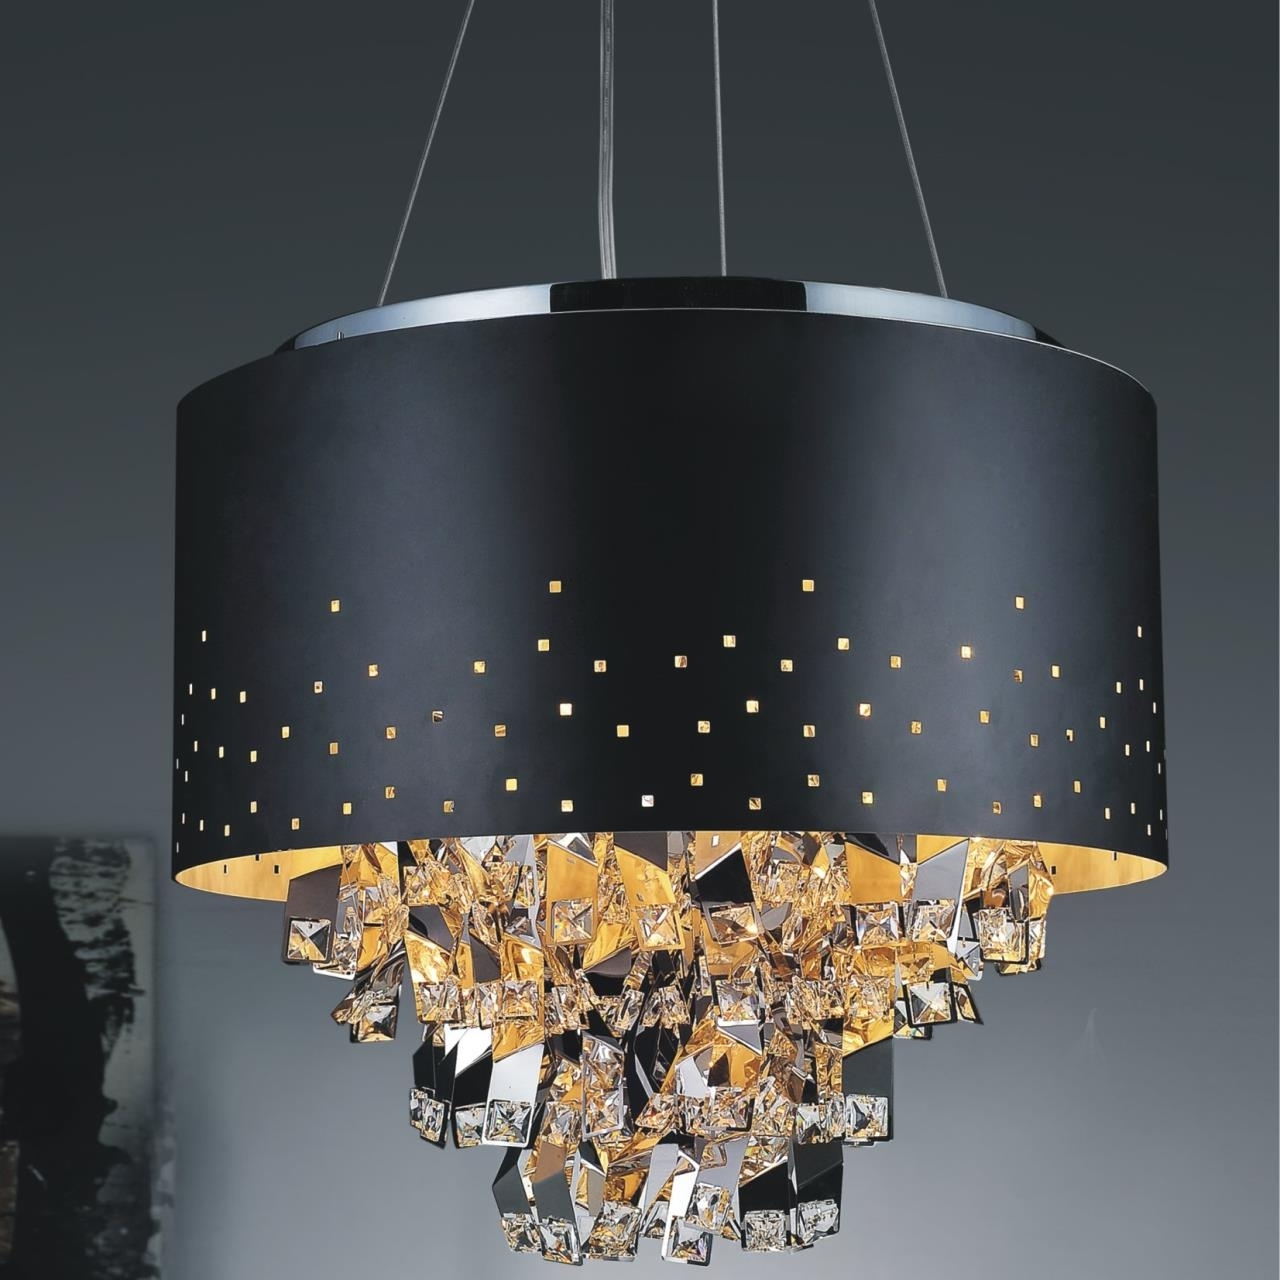 Chandeliers With Black Shades In Favorite Chandelier: Inspiring Black Metal Chandelier Wrought Iron Candle (View 7 of 20)